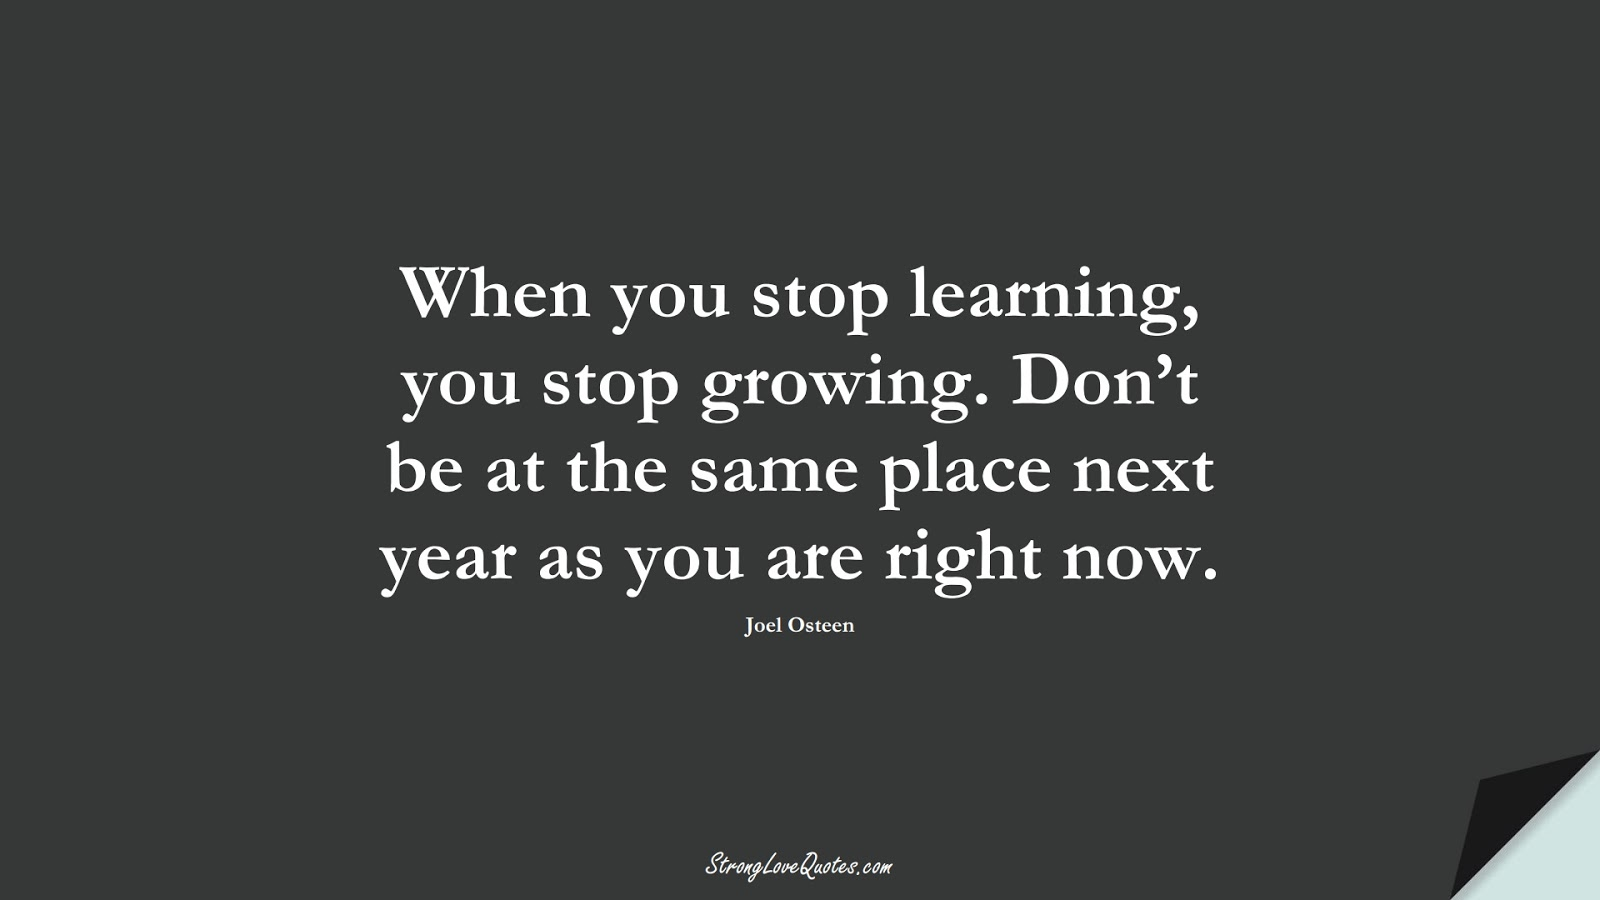 When you stop learning, you stop growing. Don't be at the same place next year as you are right now. (Joel Osteen);  #LearningQuotes